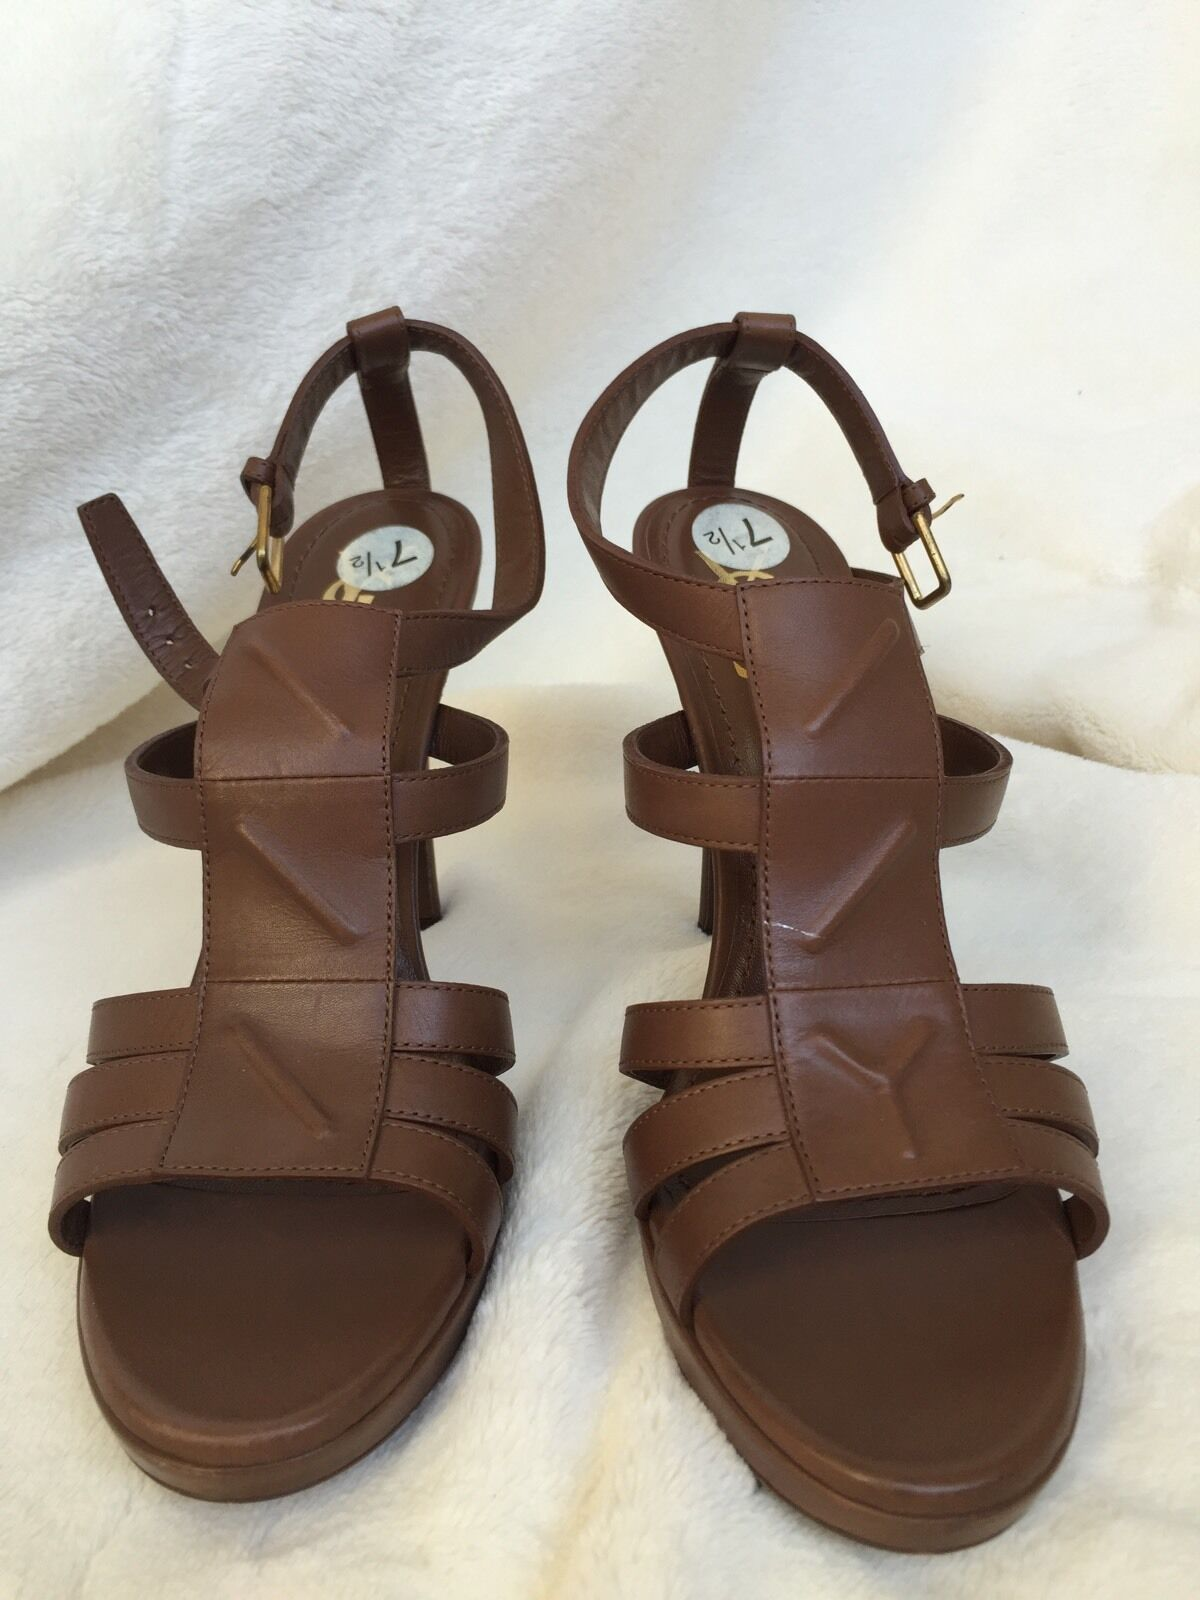 New YSL Sandals Size 37.5